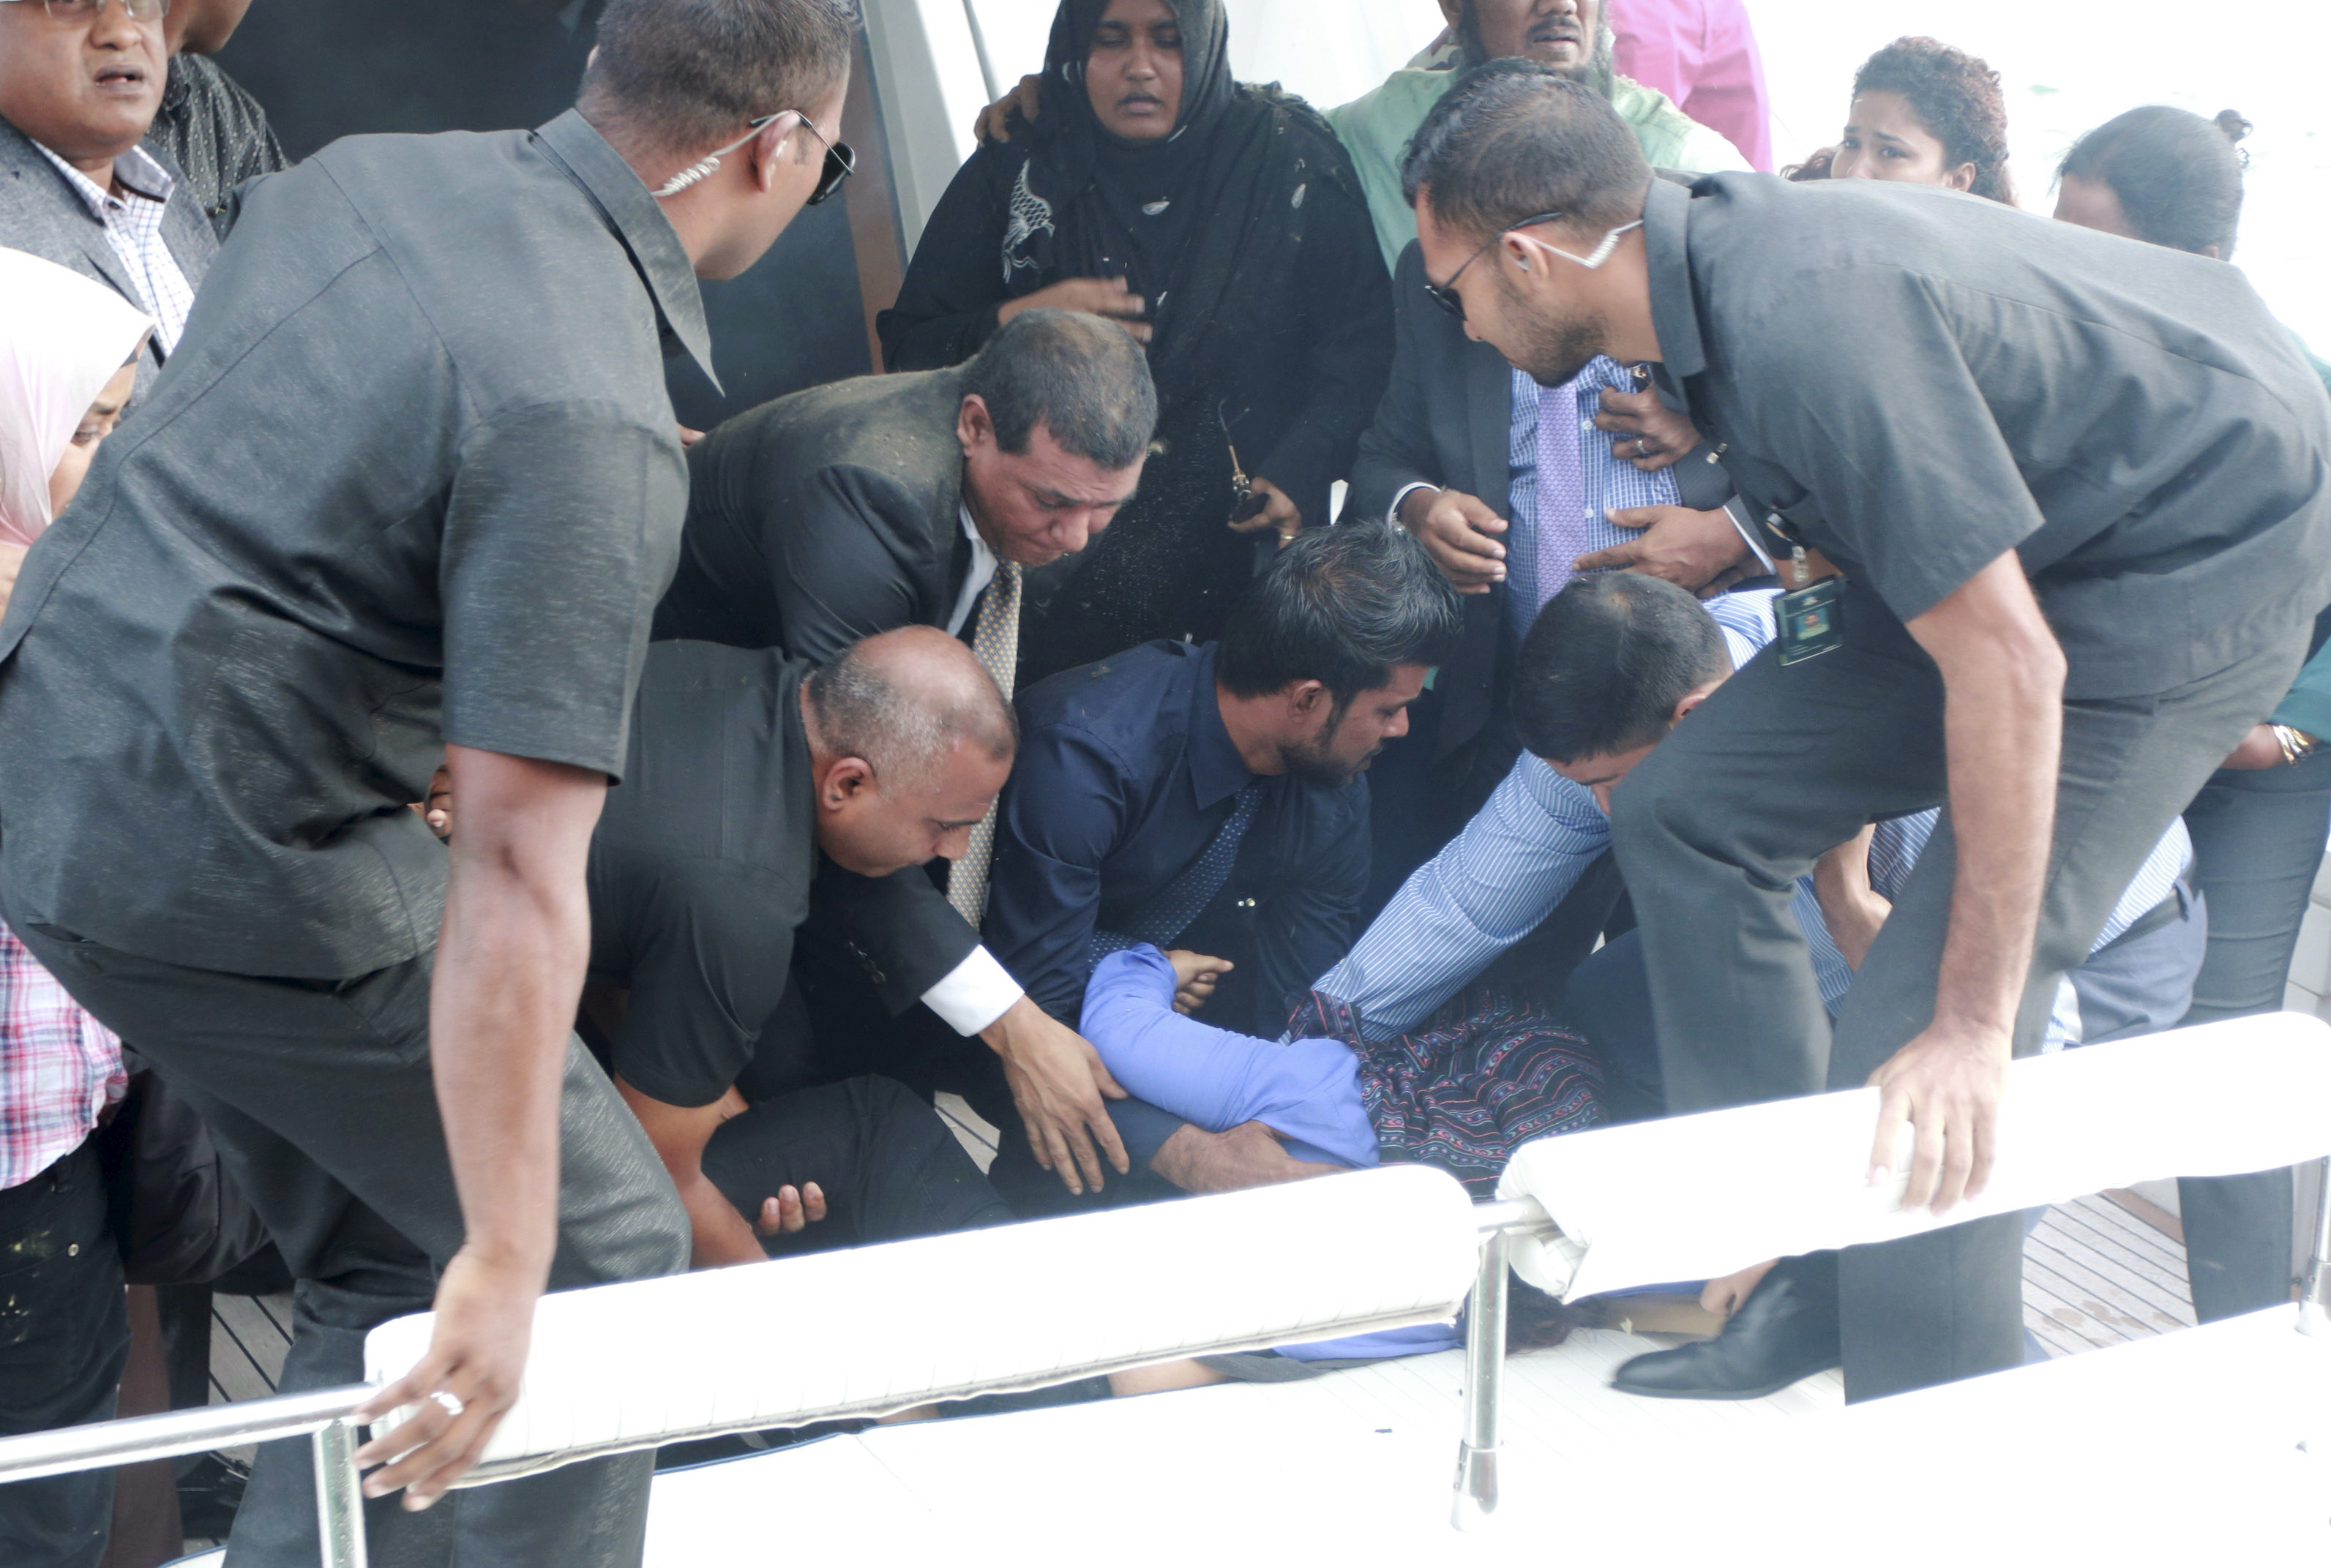 Officials carry an injured woman off the speed boat of Maldives President Abdulla Yameen (not pictured) after an explosion onboard, in Male, Maldives September 28, 2015.